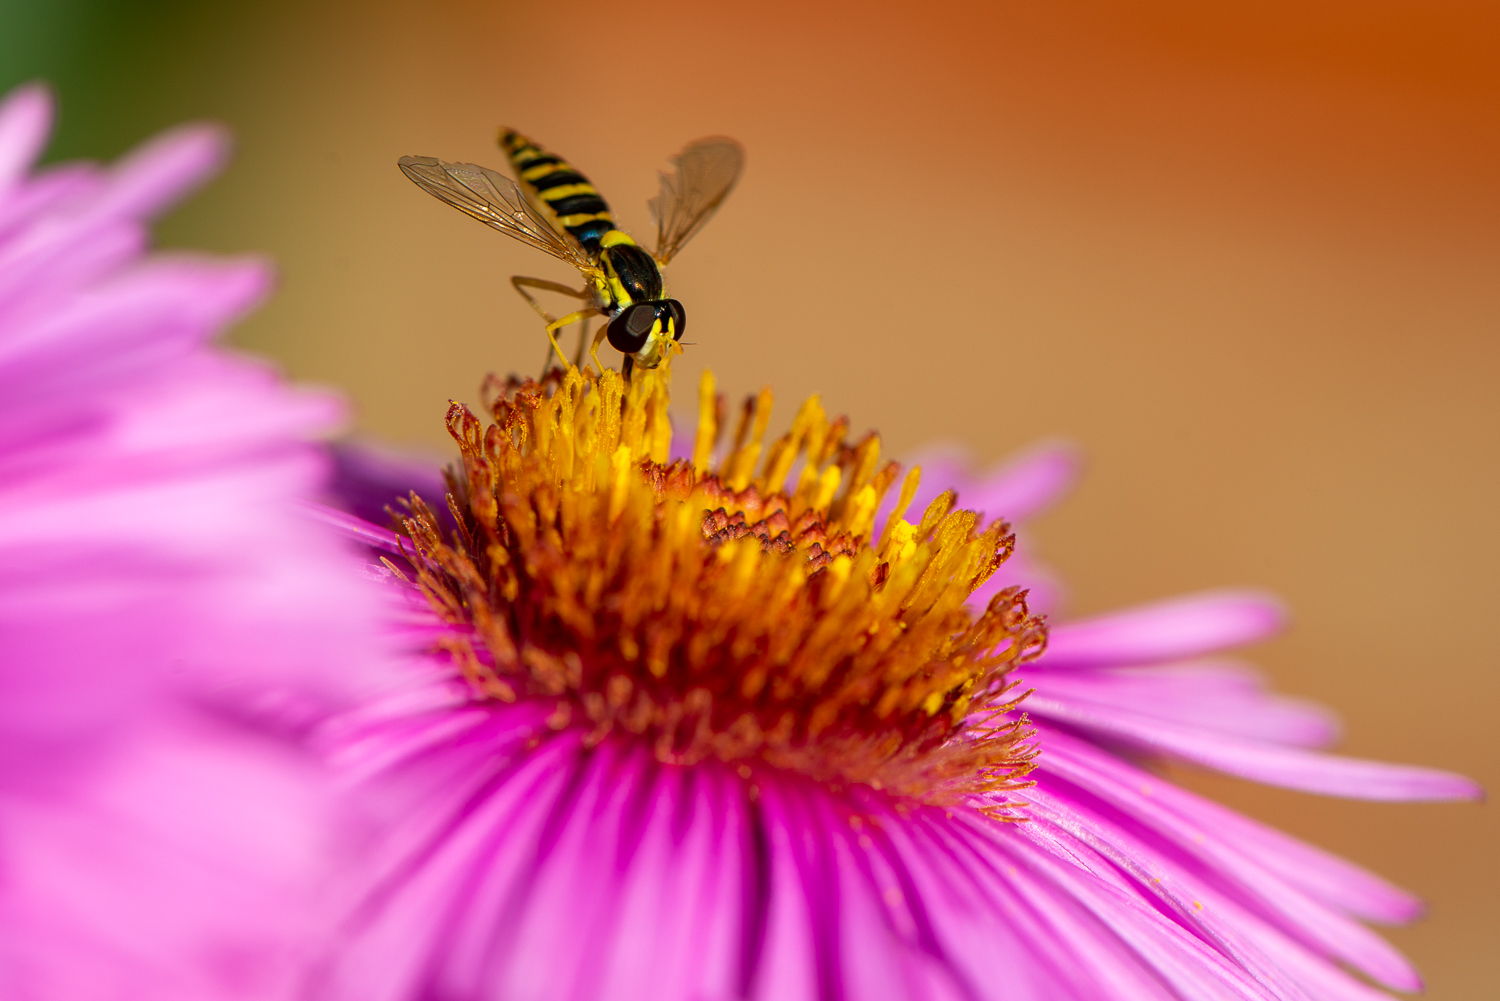 The Hoverfly and the New England Aster